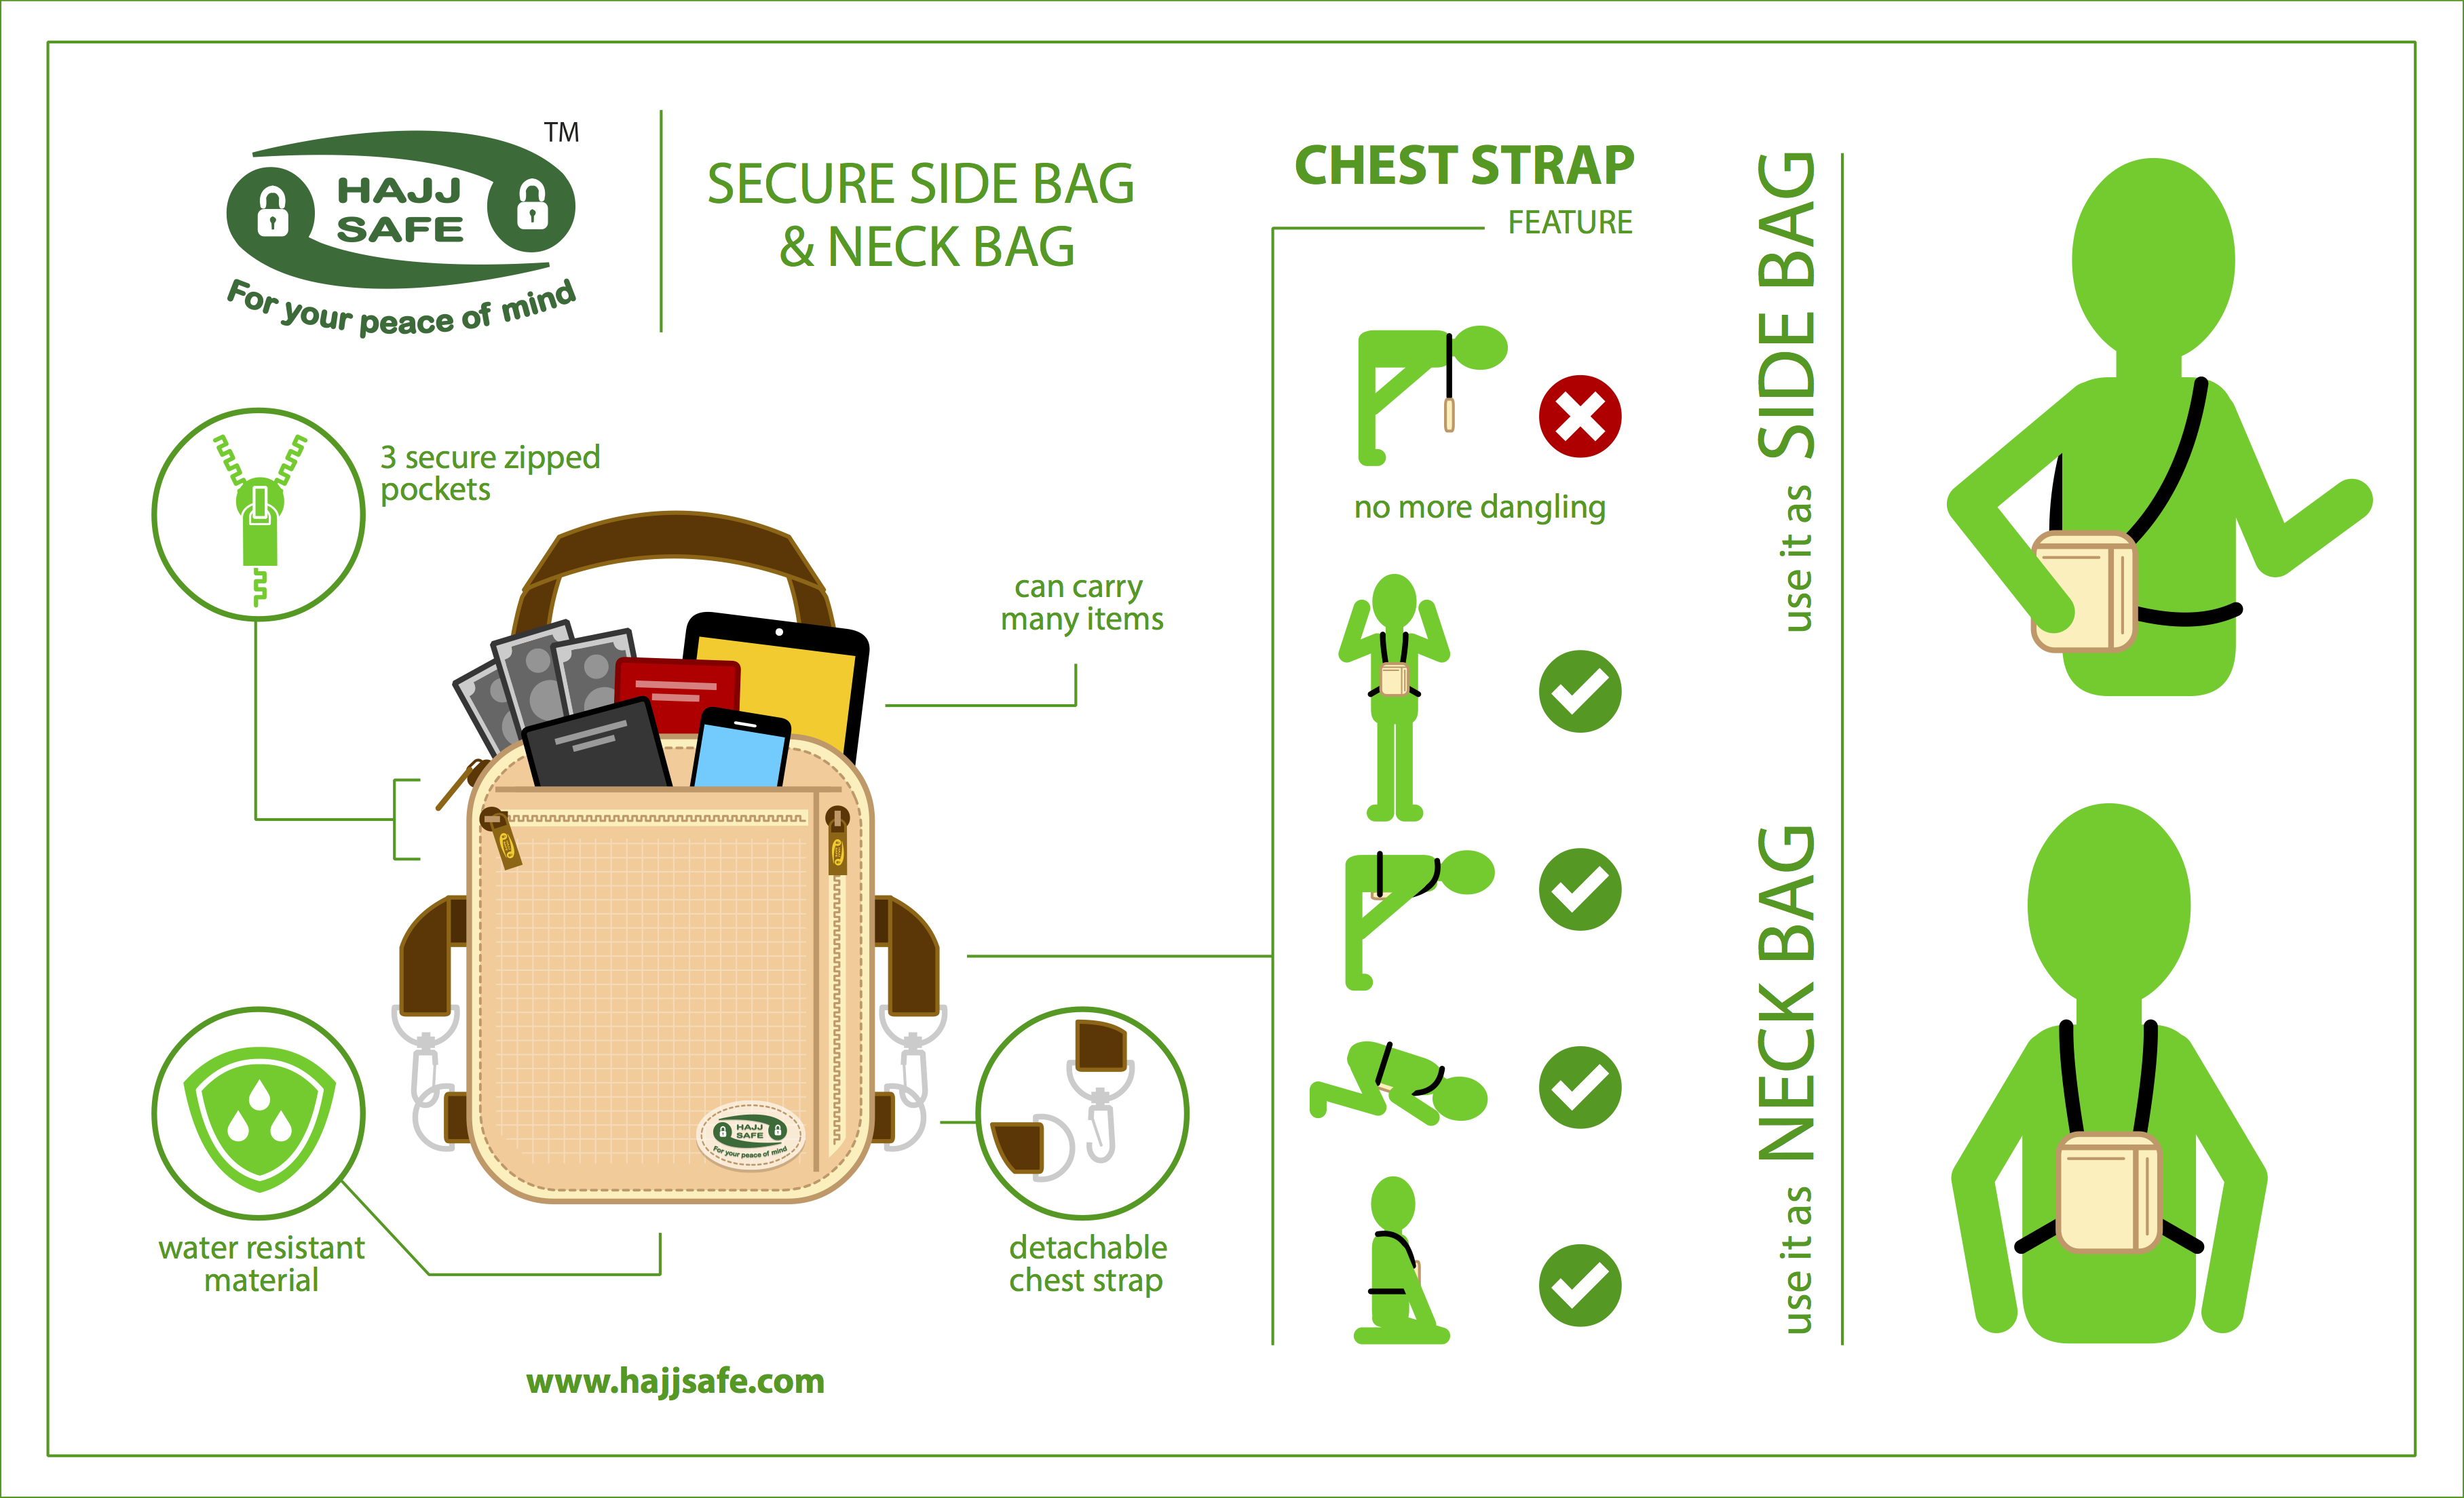 hajj-safe-secure-neck-side-bag-1.png